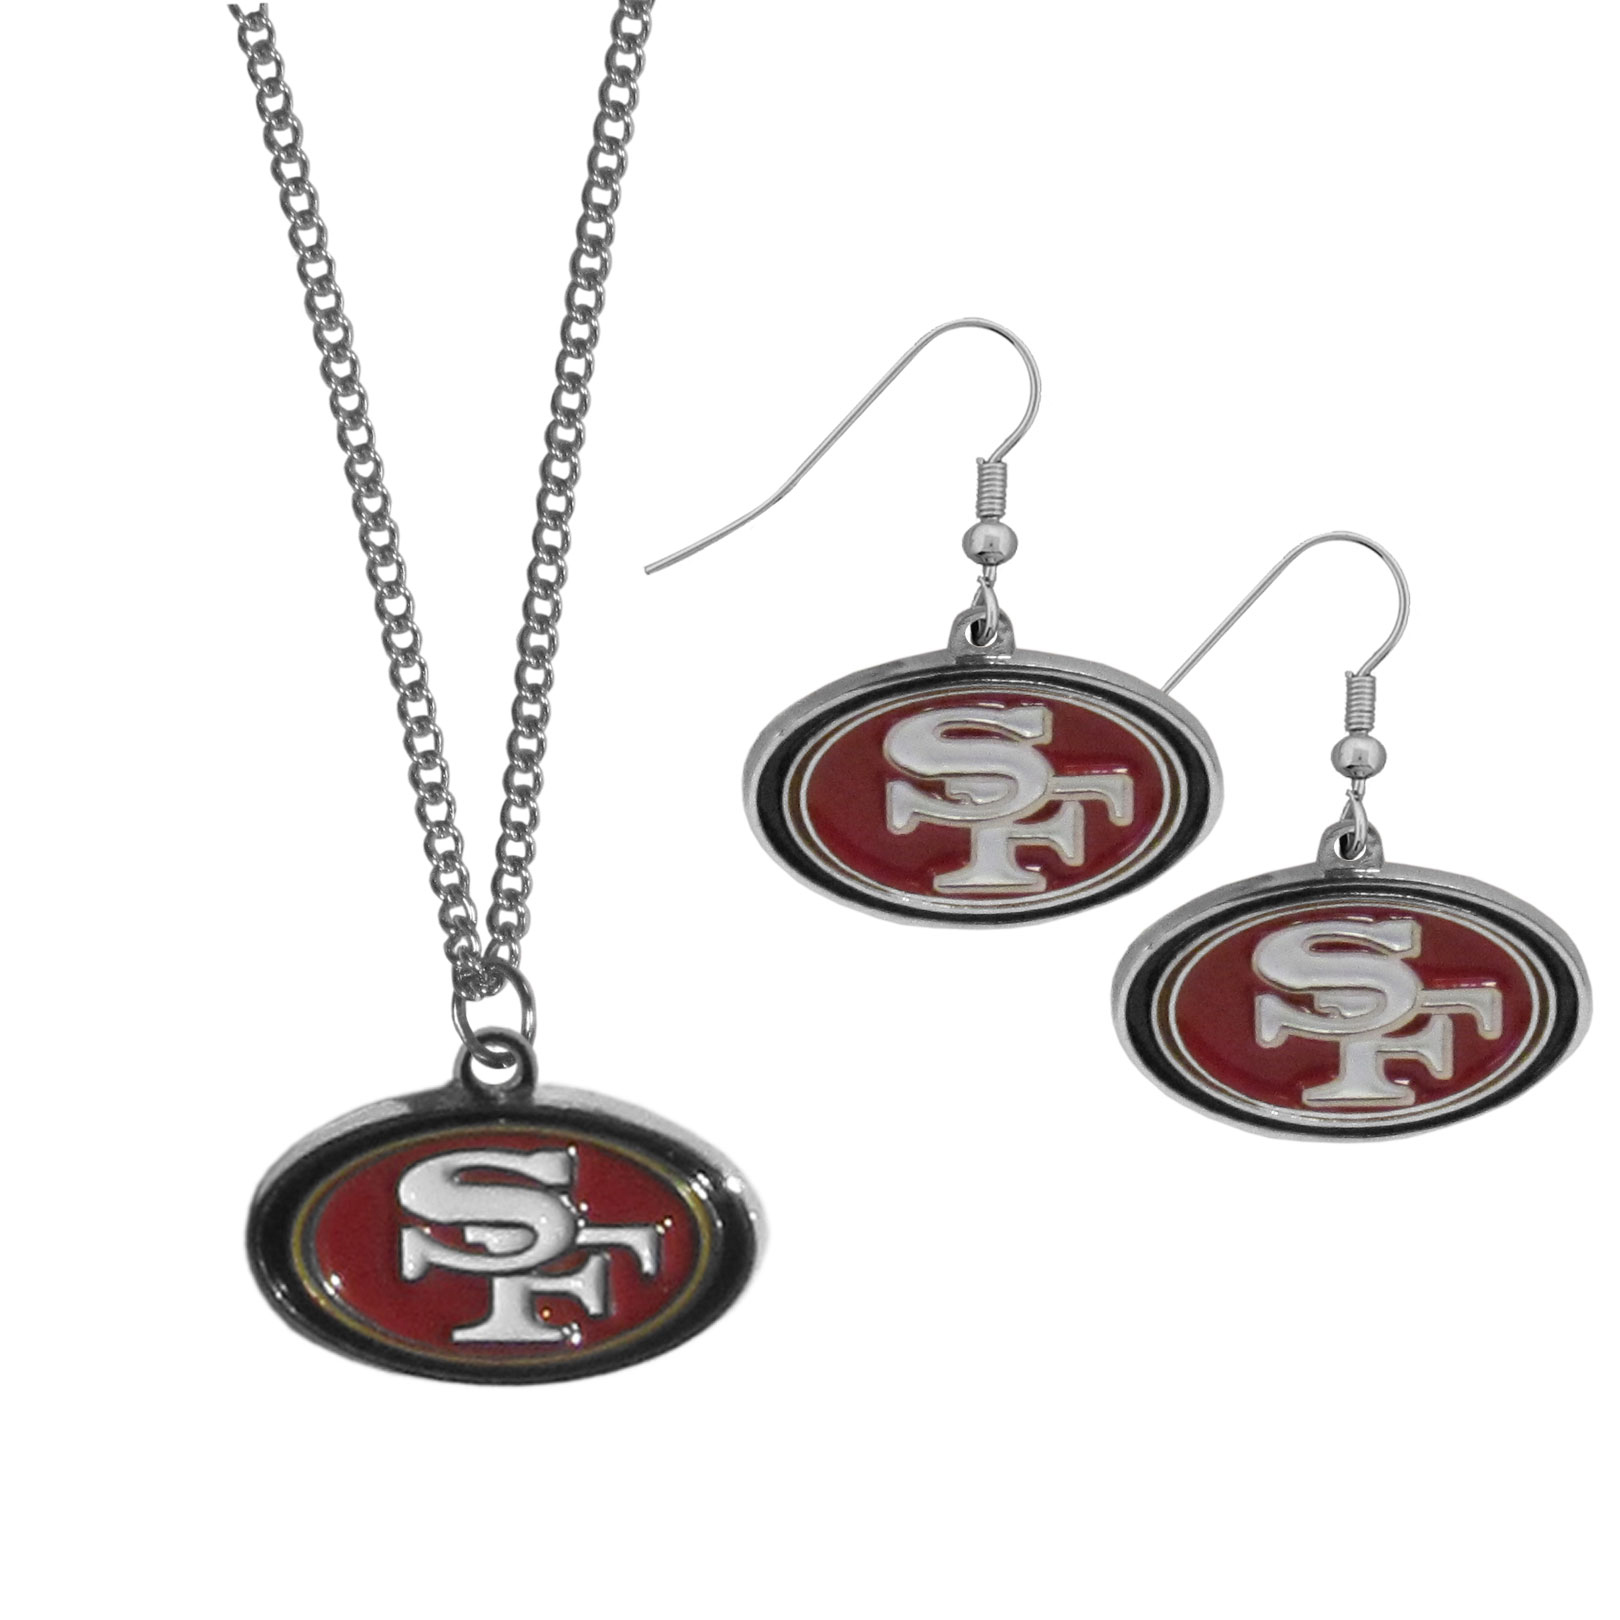 San Francisco 49ers Dangle Earrings and Chain Necklace Set - This classic jewelry set contains are most popular San Francisco 49ers dangle earrings and 22 inch chain necklace. The trendy, dangle earrings are lightweight and feature a fully cast metal team charm with enameled team colors. The matching necklace completes this fashion forward combo and is a spirited set that is perfect for game day but nice enough for everyday.